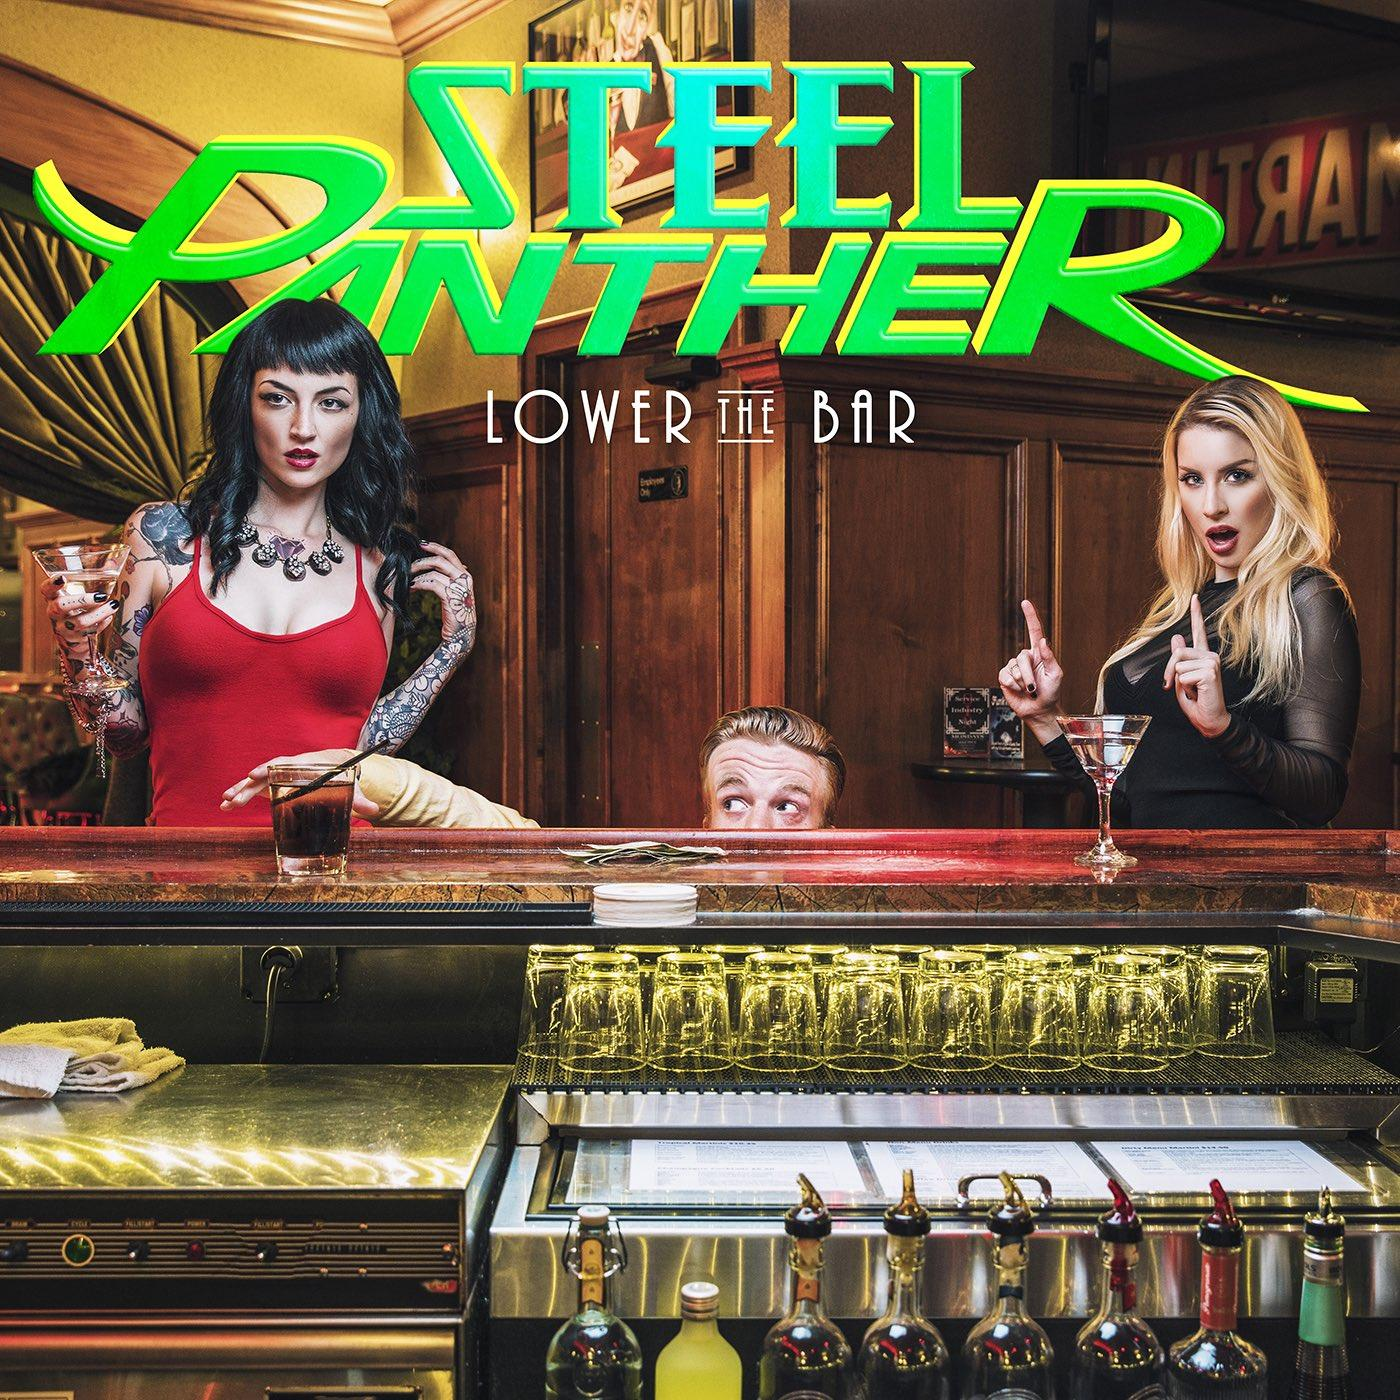 Steel Panther: Lower The Bar (2017) Book Cover